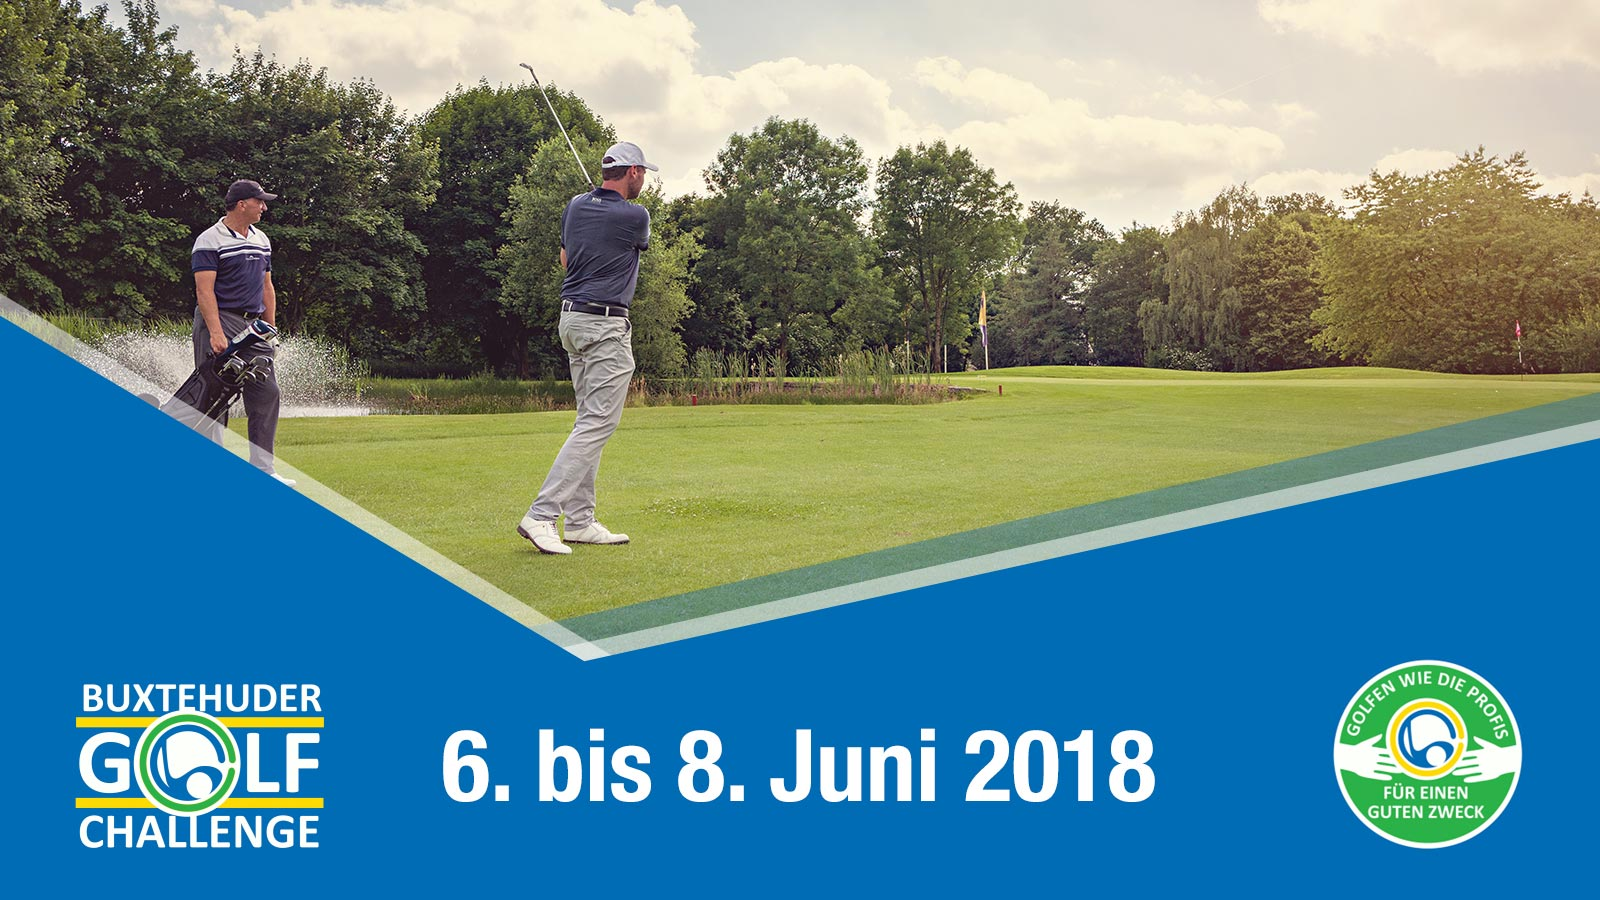 Golf-Club Buxtehude: 5. Buxtehuder Golf Challenge